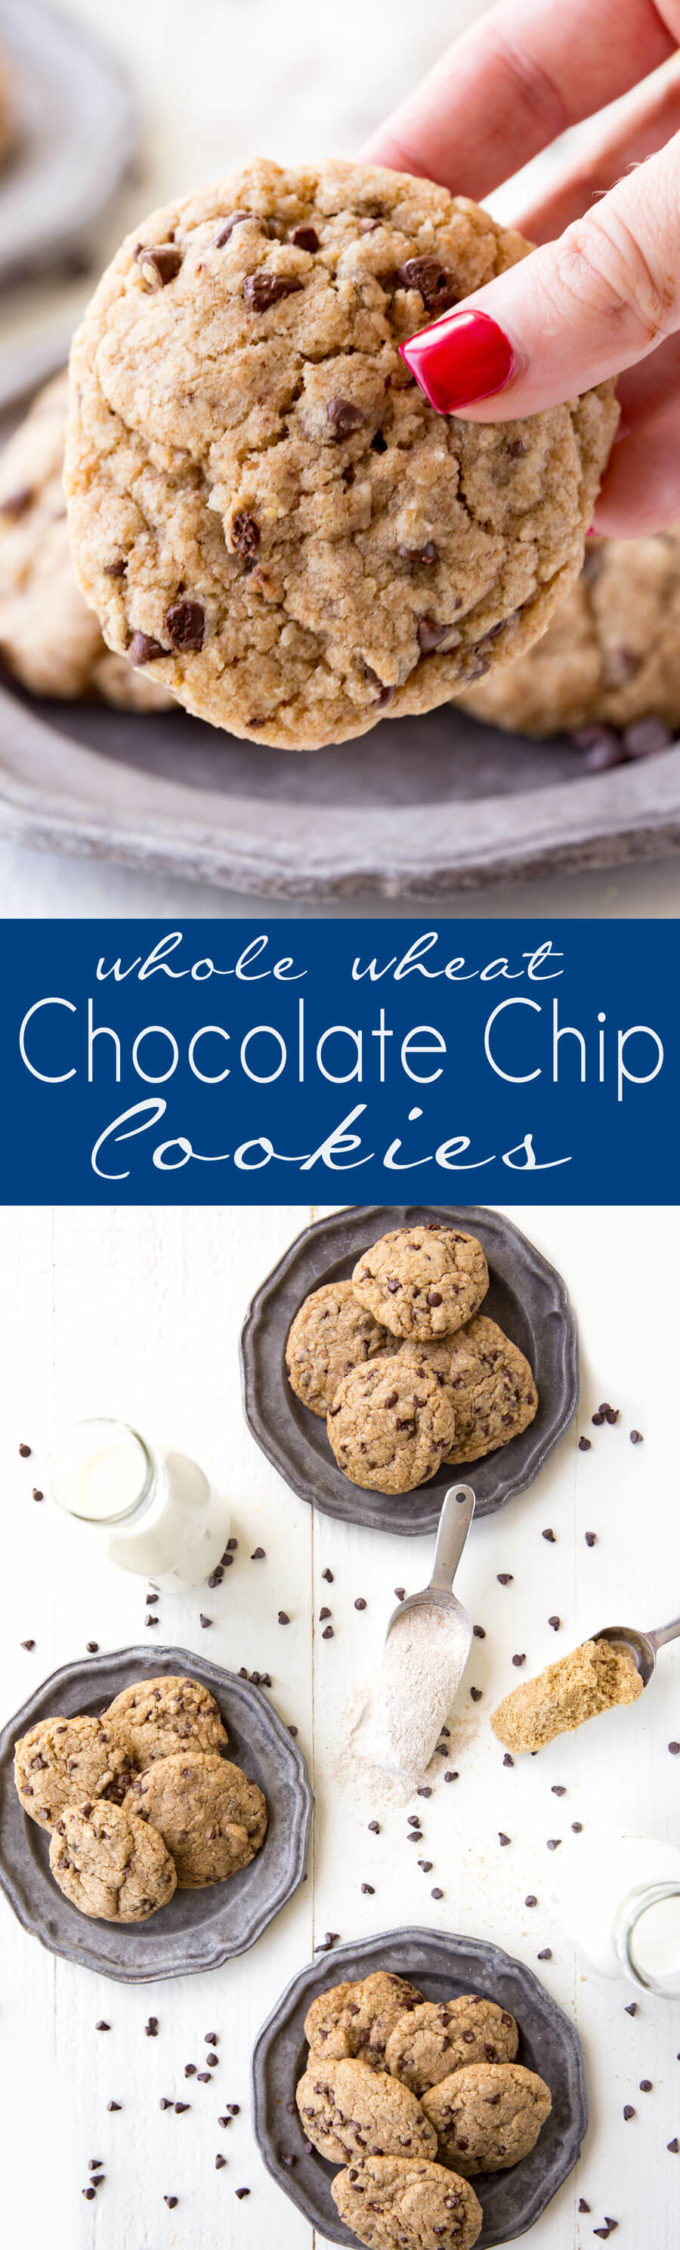 Whole Wheat Chocolate Chip Cookies - Eazy Peazy Mealz